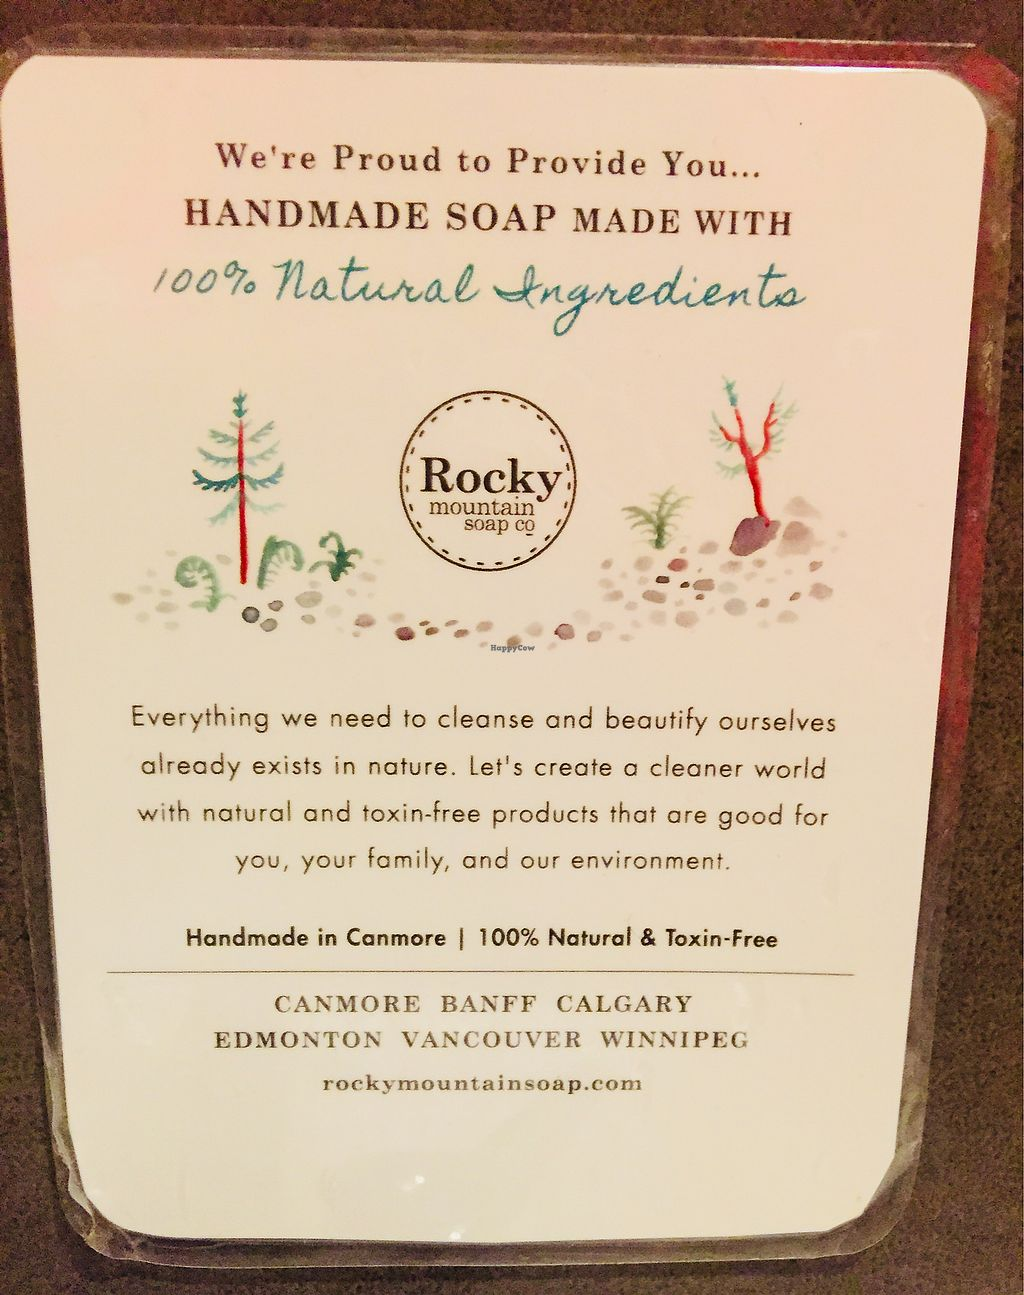 """Photo of Mongolie Grill  by <a href=""""/members/profile/L%C3%A9onieHenry"""">LéonieHenry</a> <br/>Hand made soap with natural ingredients  <br/> April 12, 2018  - <a href='/contact/abuse/image/42936/384633'>Report</a>"""